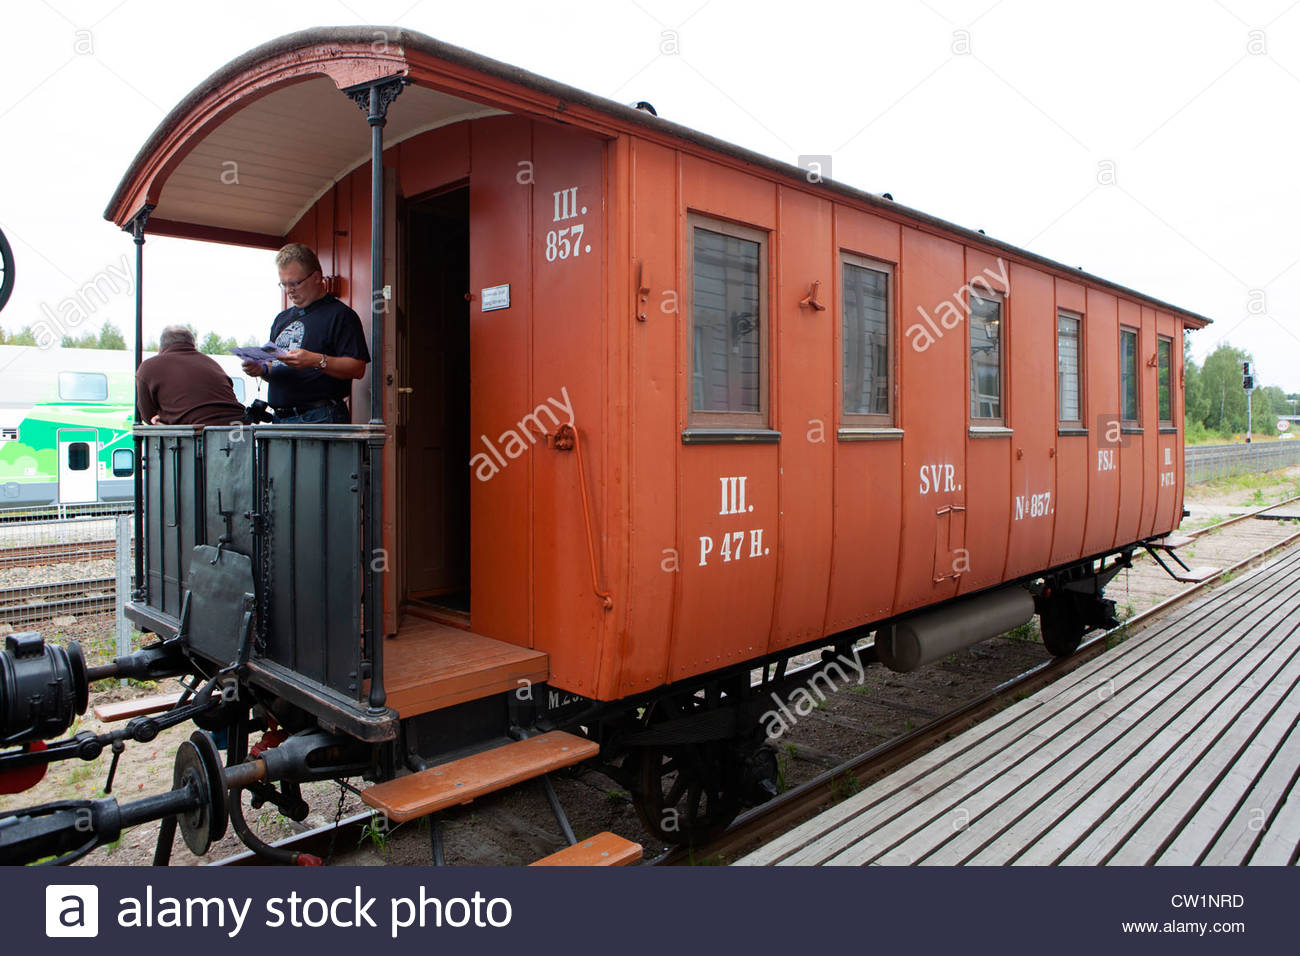 Old 3rd Class passenger car from the 1800's. - Stock Image